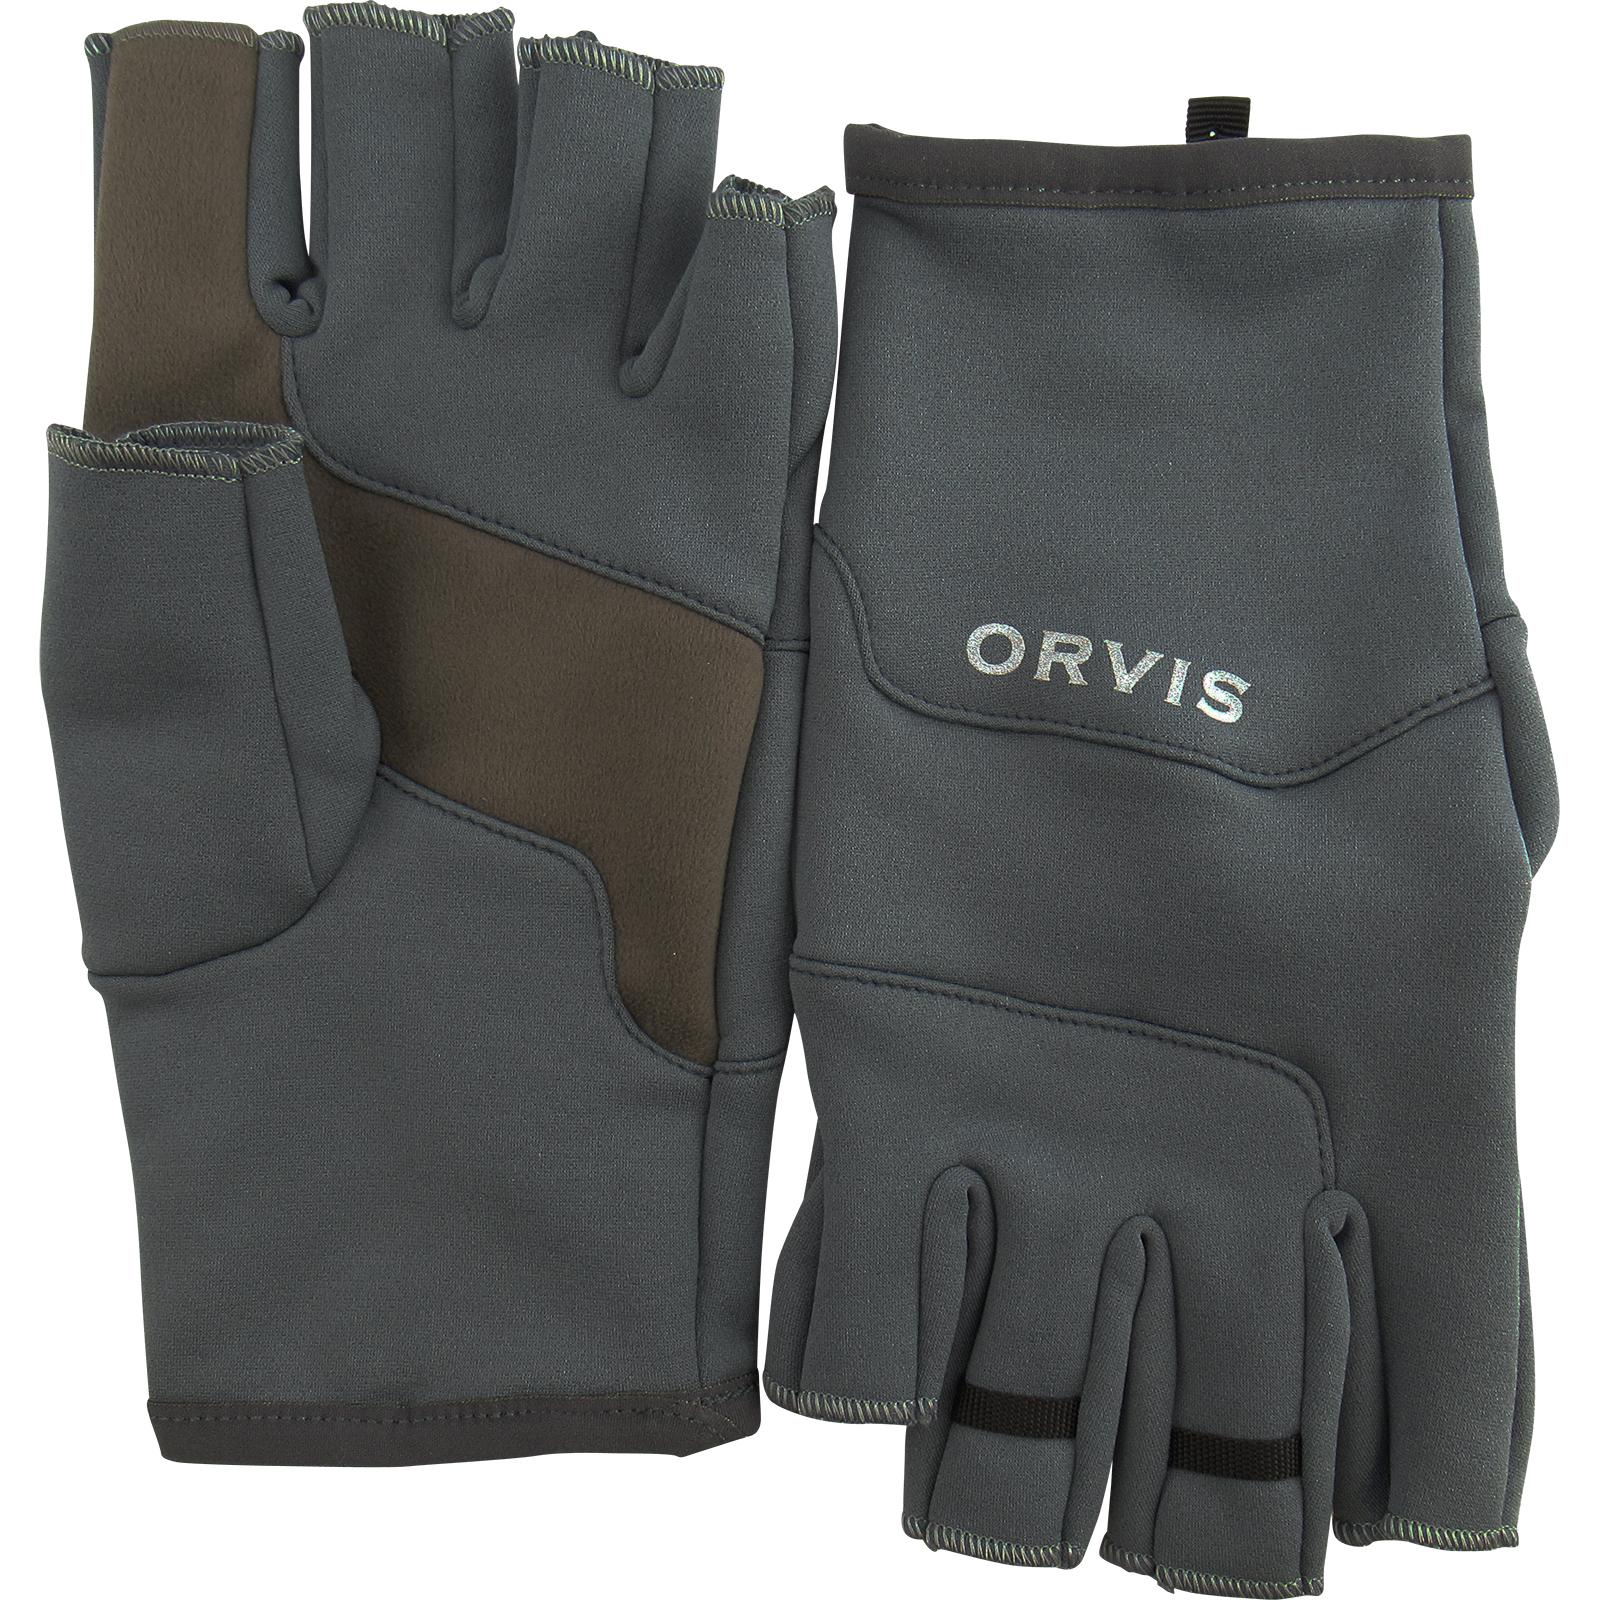 Orvis Men's Fingerless Fleece Glove